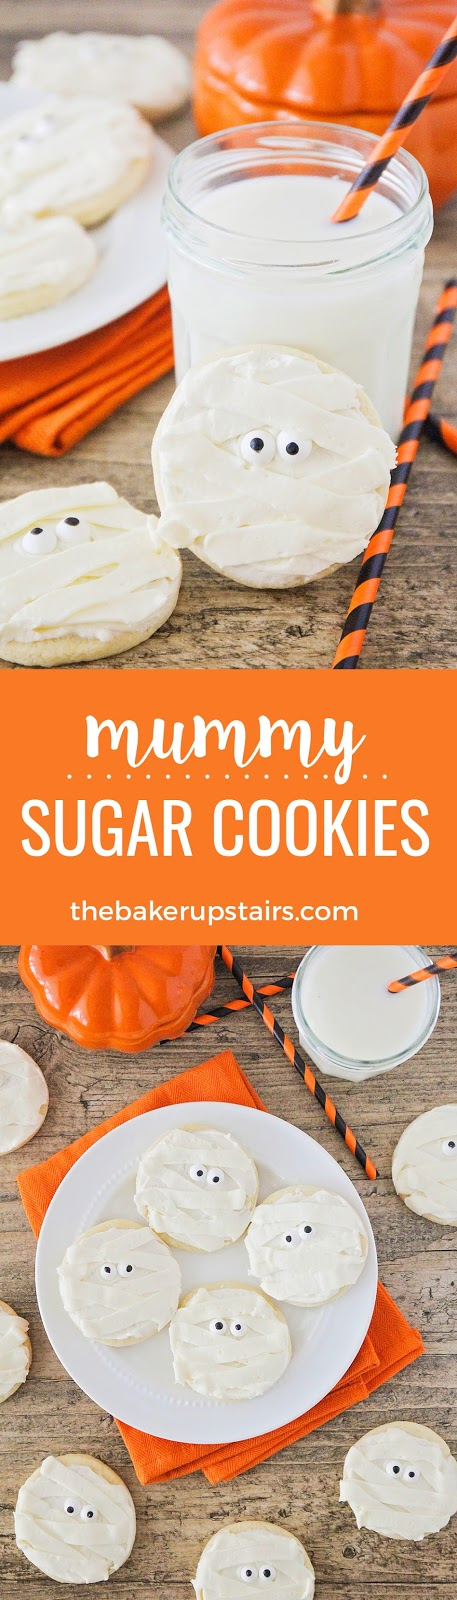 These adorable mummy sugar cookies are so easy to make, and perfect for celebrating Halloween!